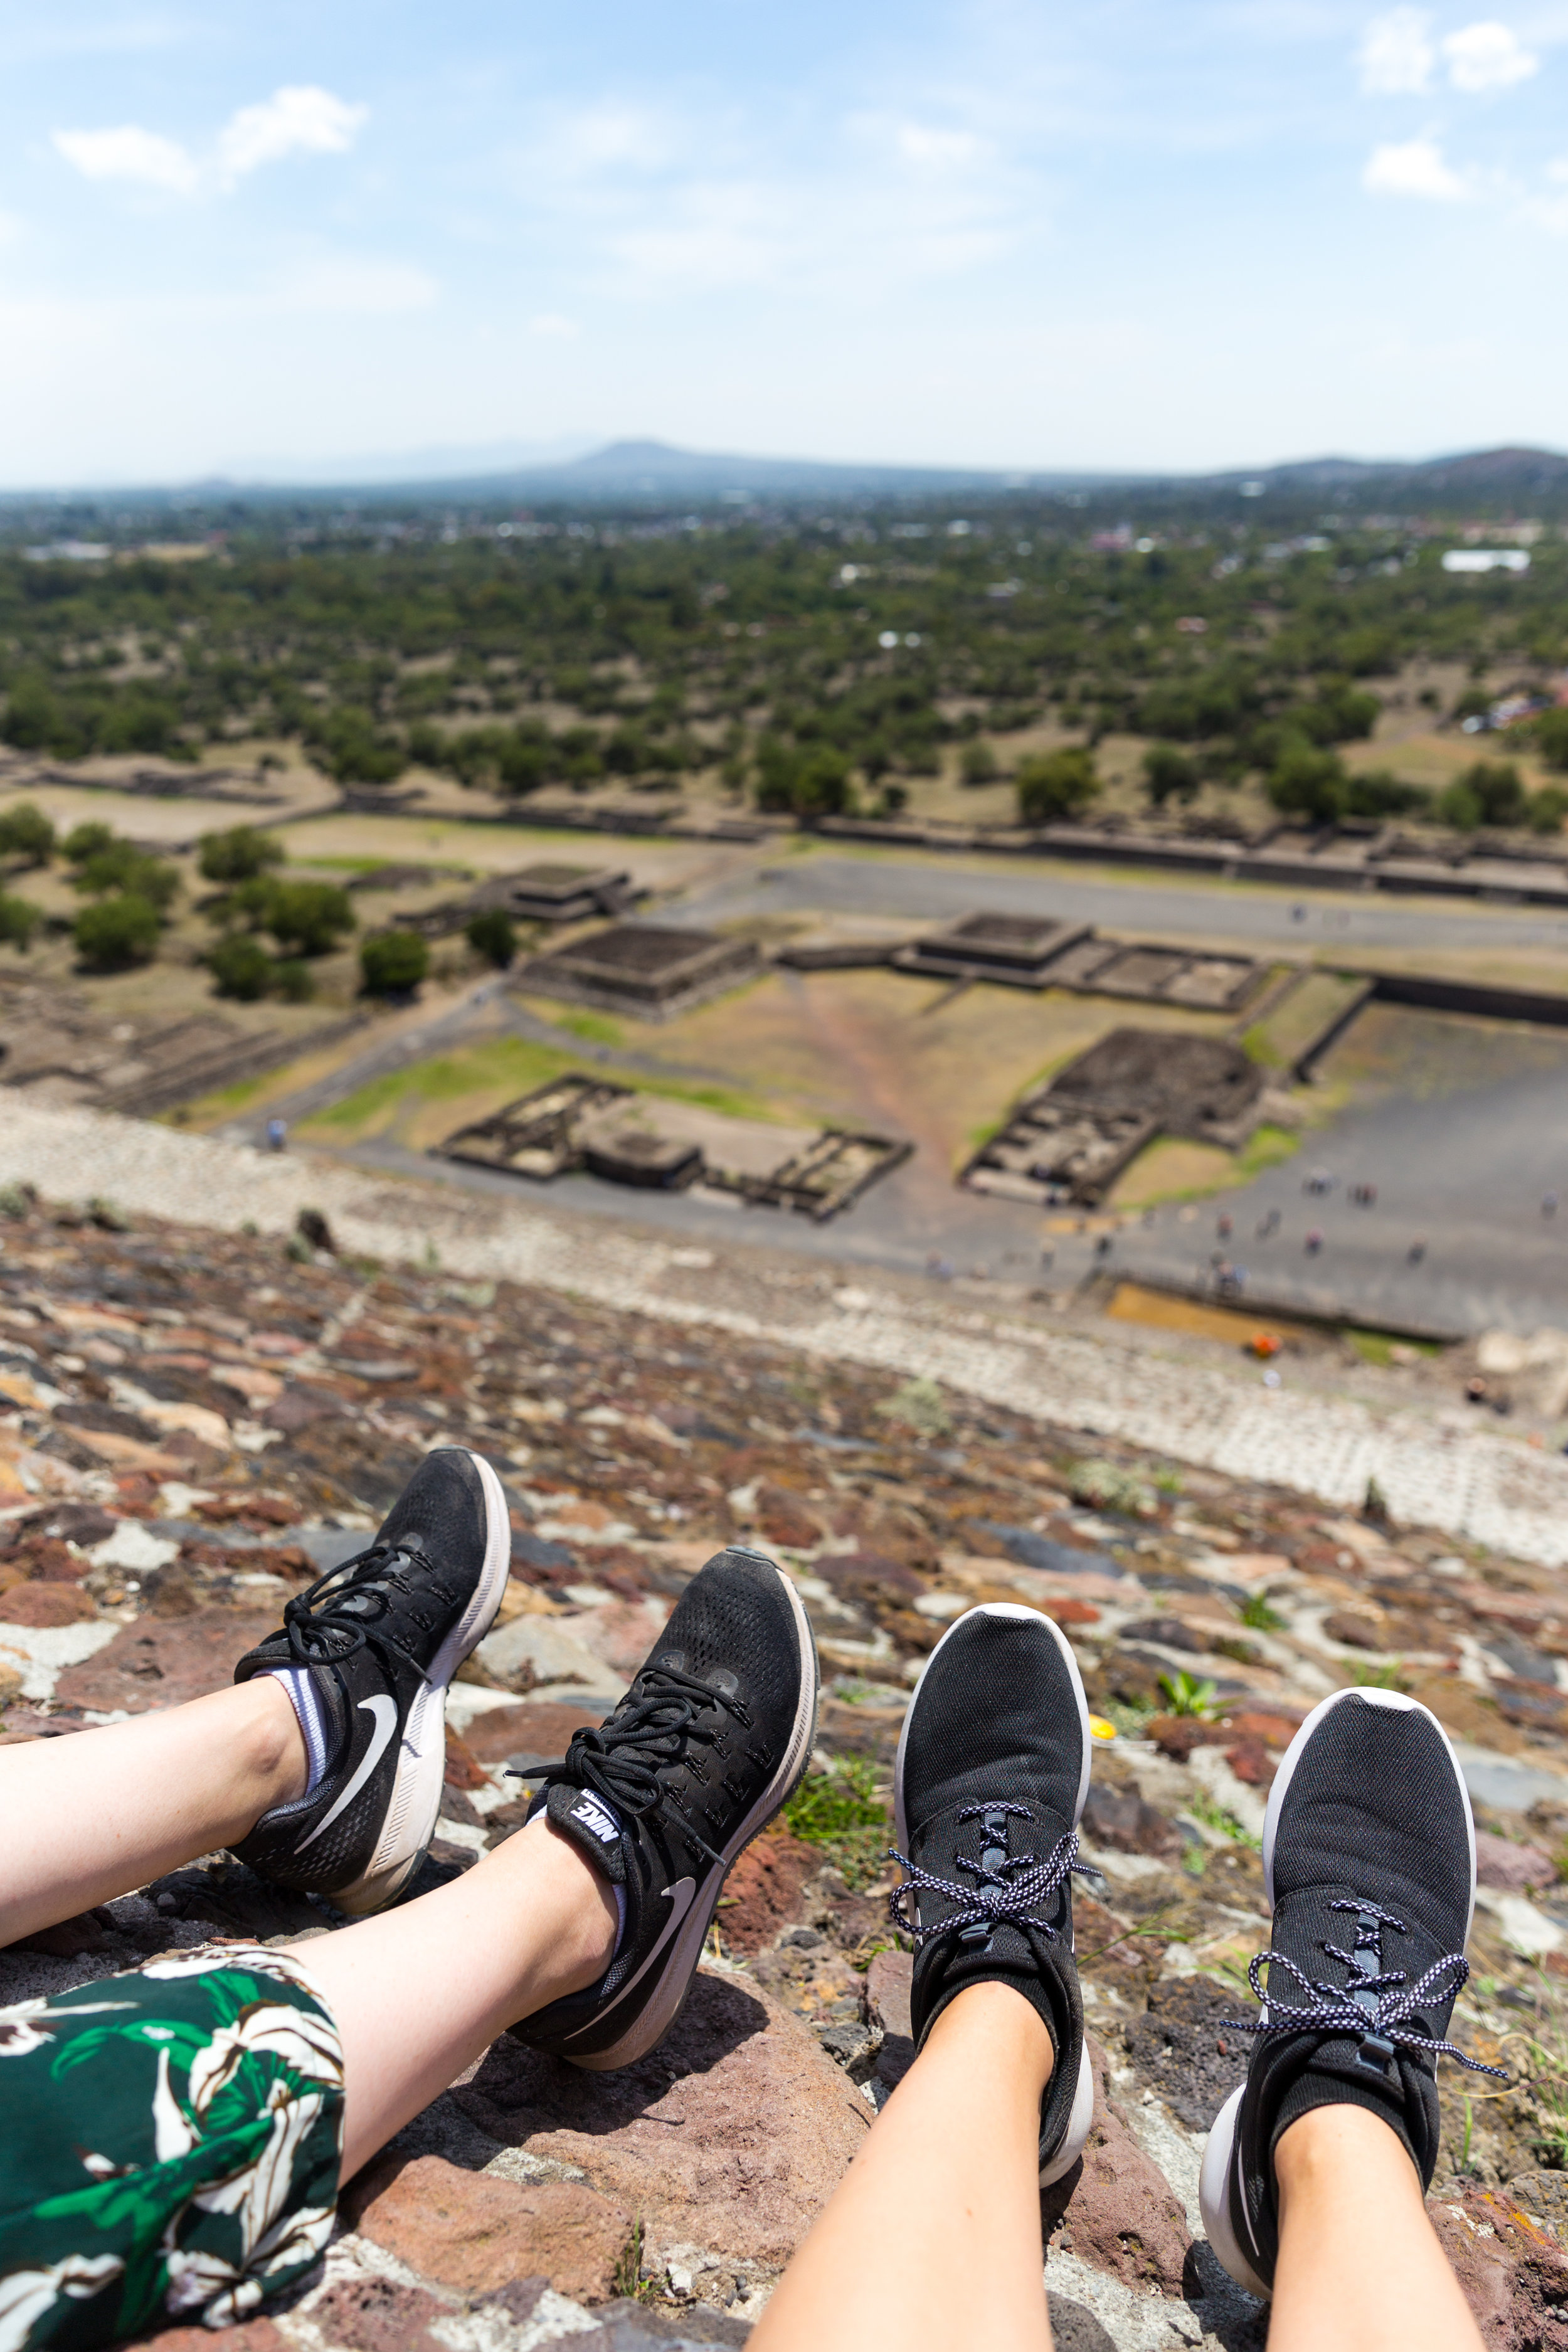 Mexico City Teotihuacan-7.jpg